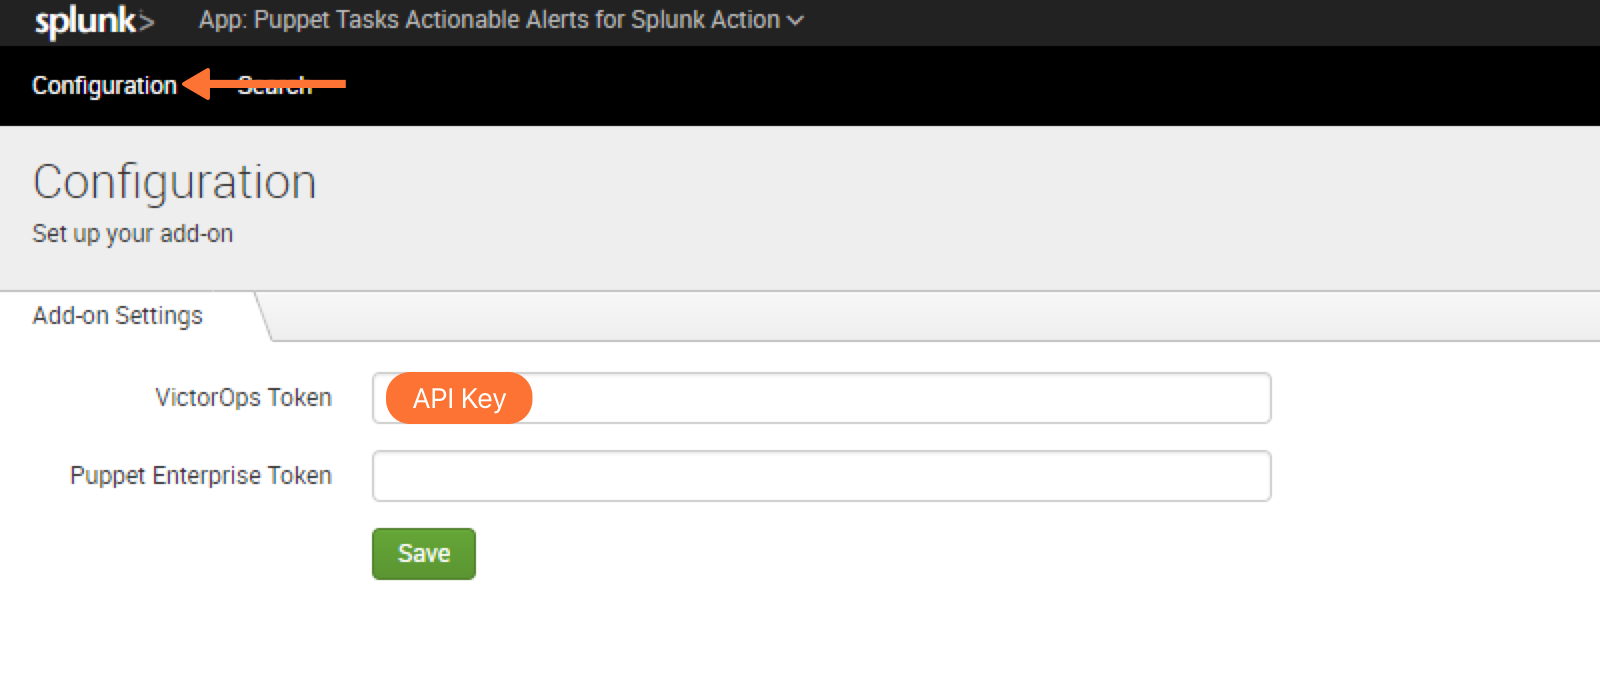 Configure puppet tasks in splunk enterprise